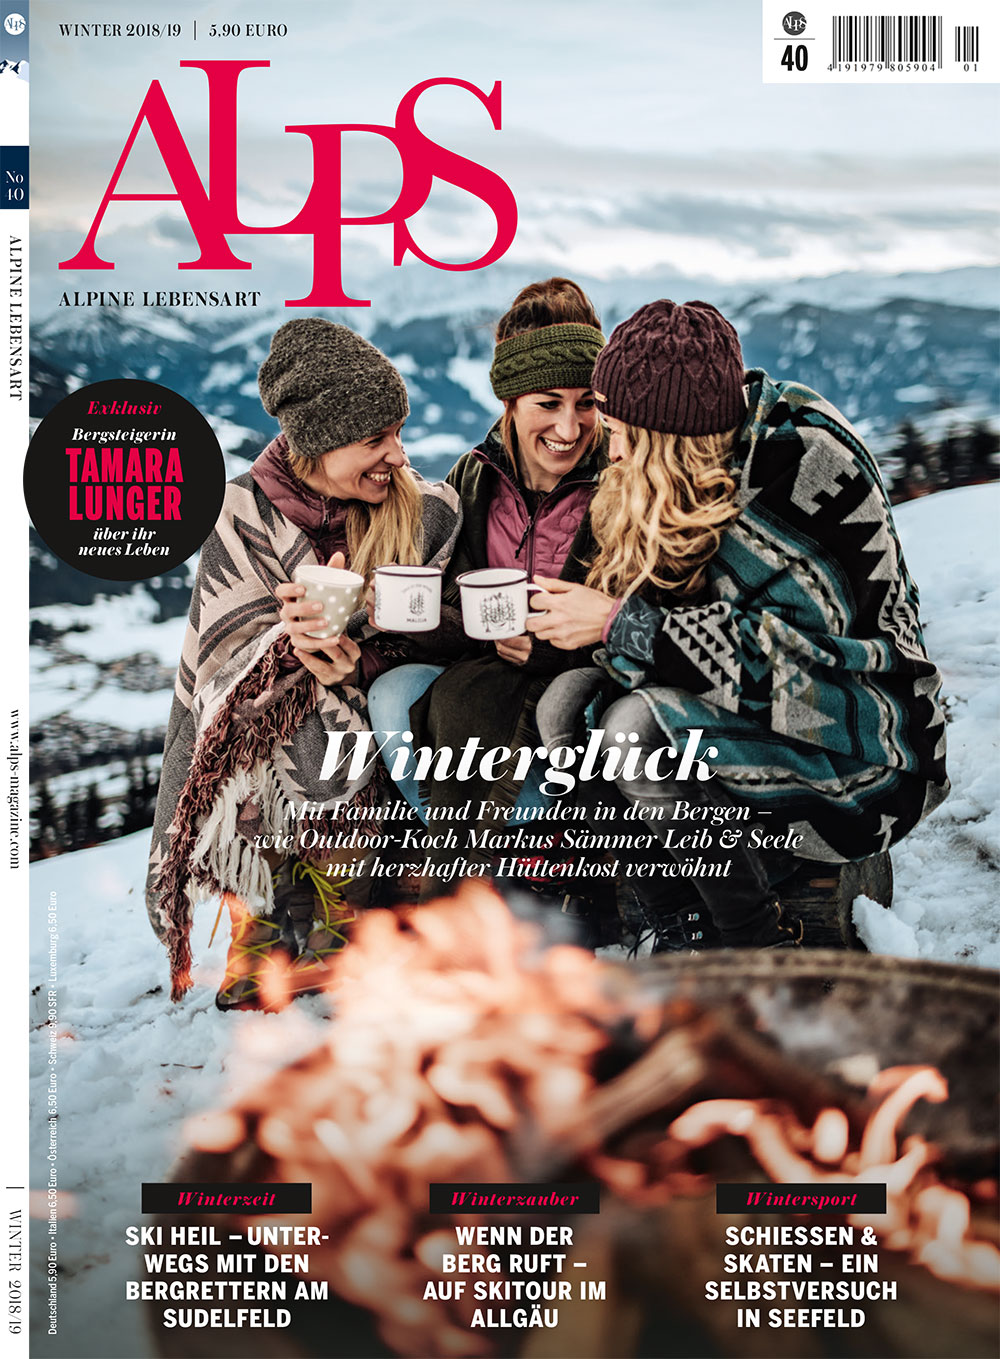 ALPS Cover 40 Winter